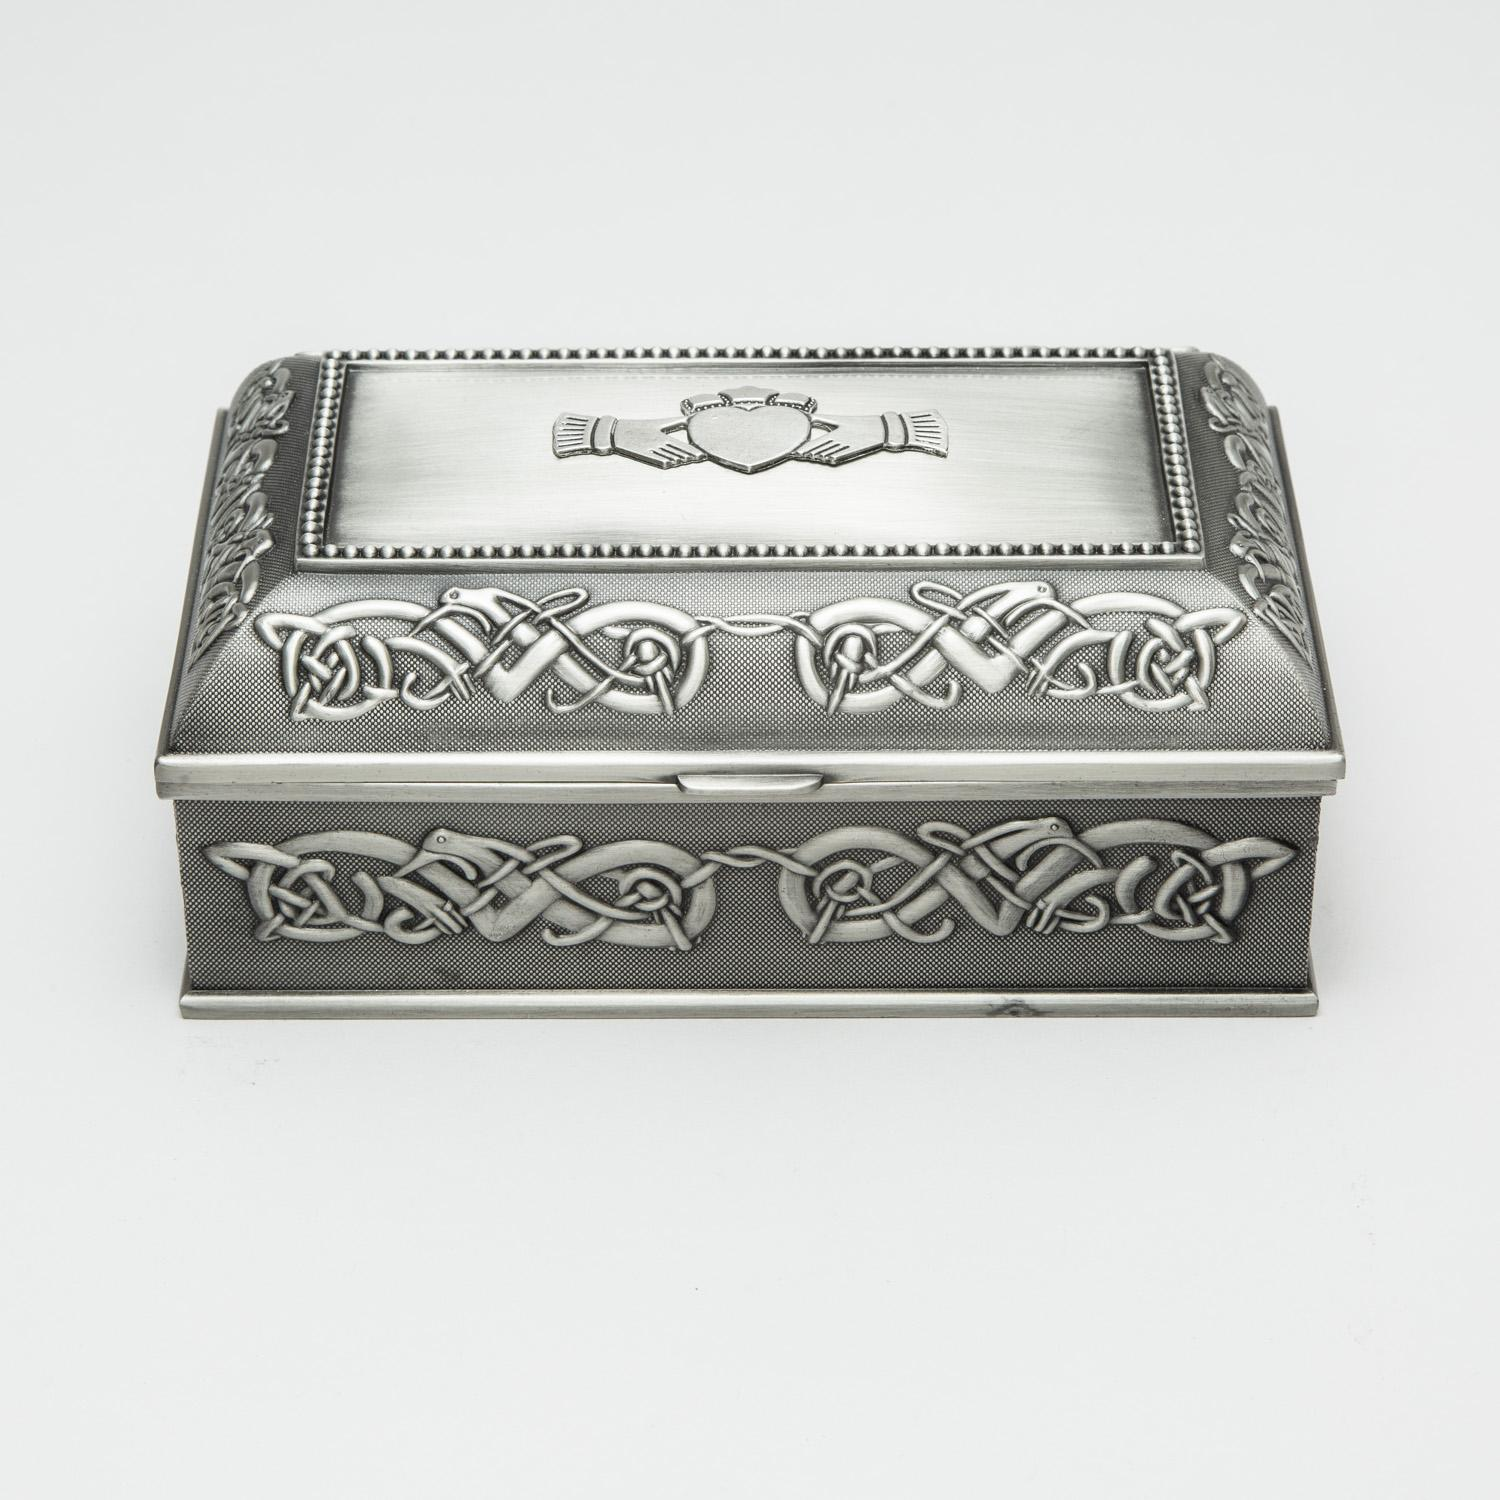 Mullingar Pewter Jewelry Box